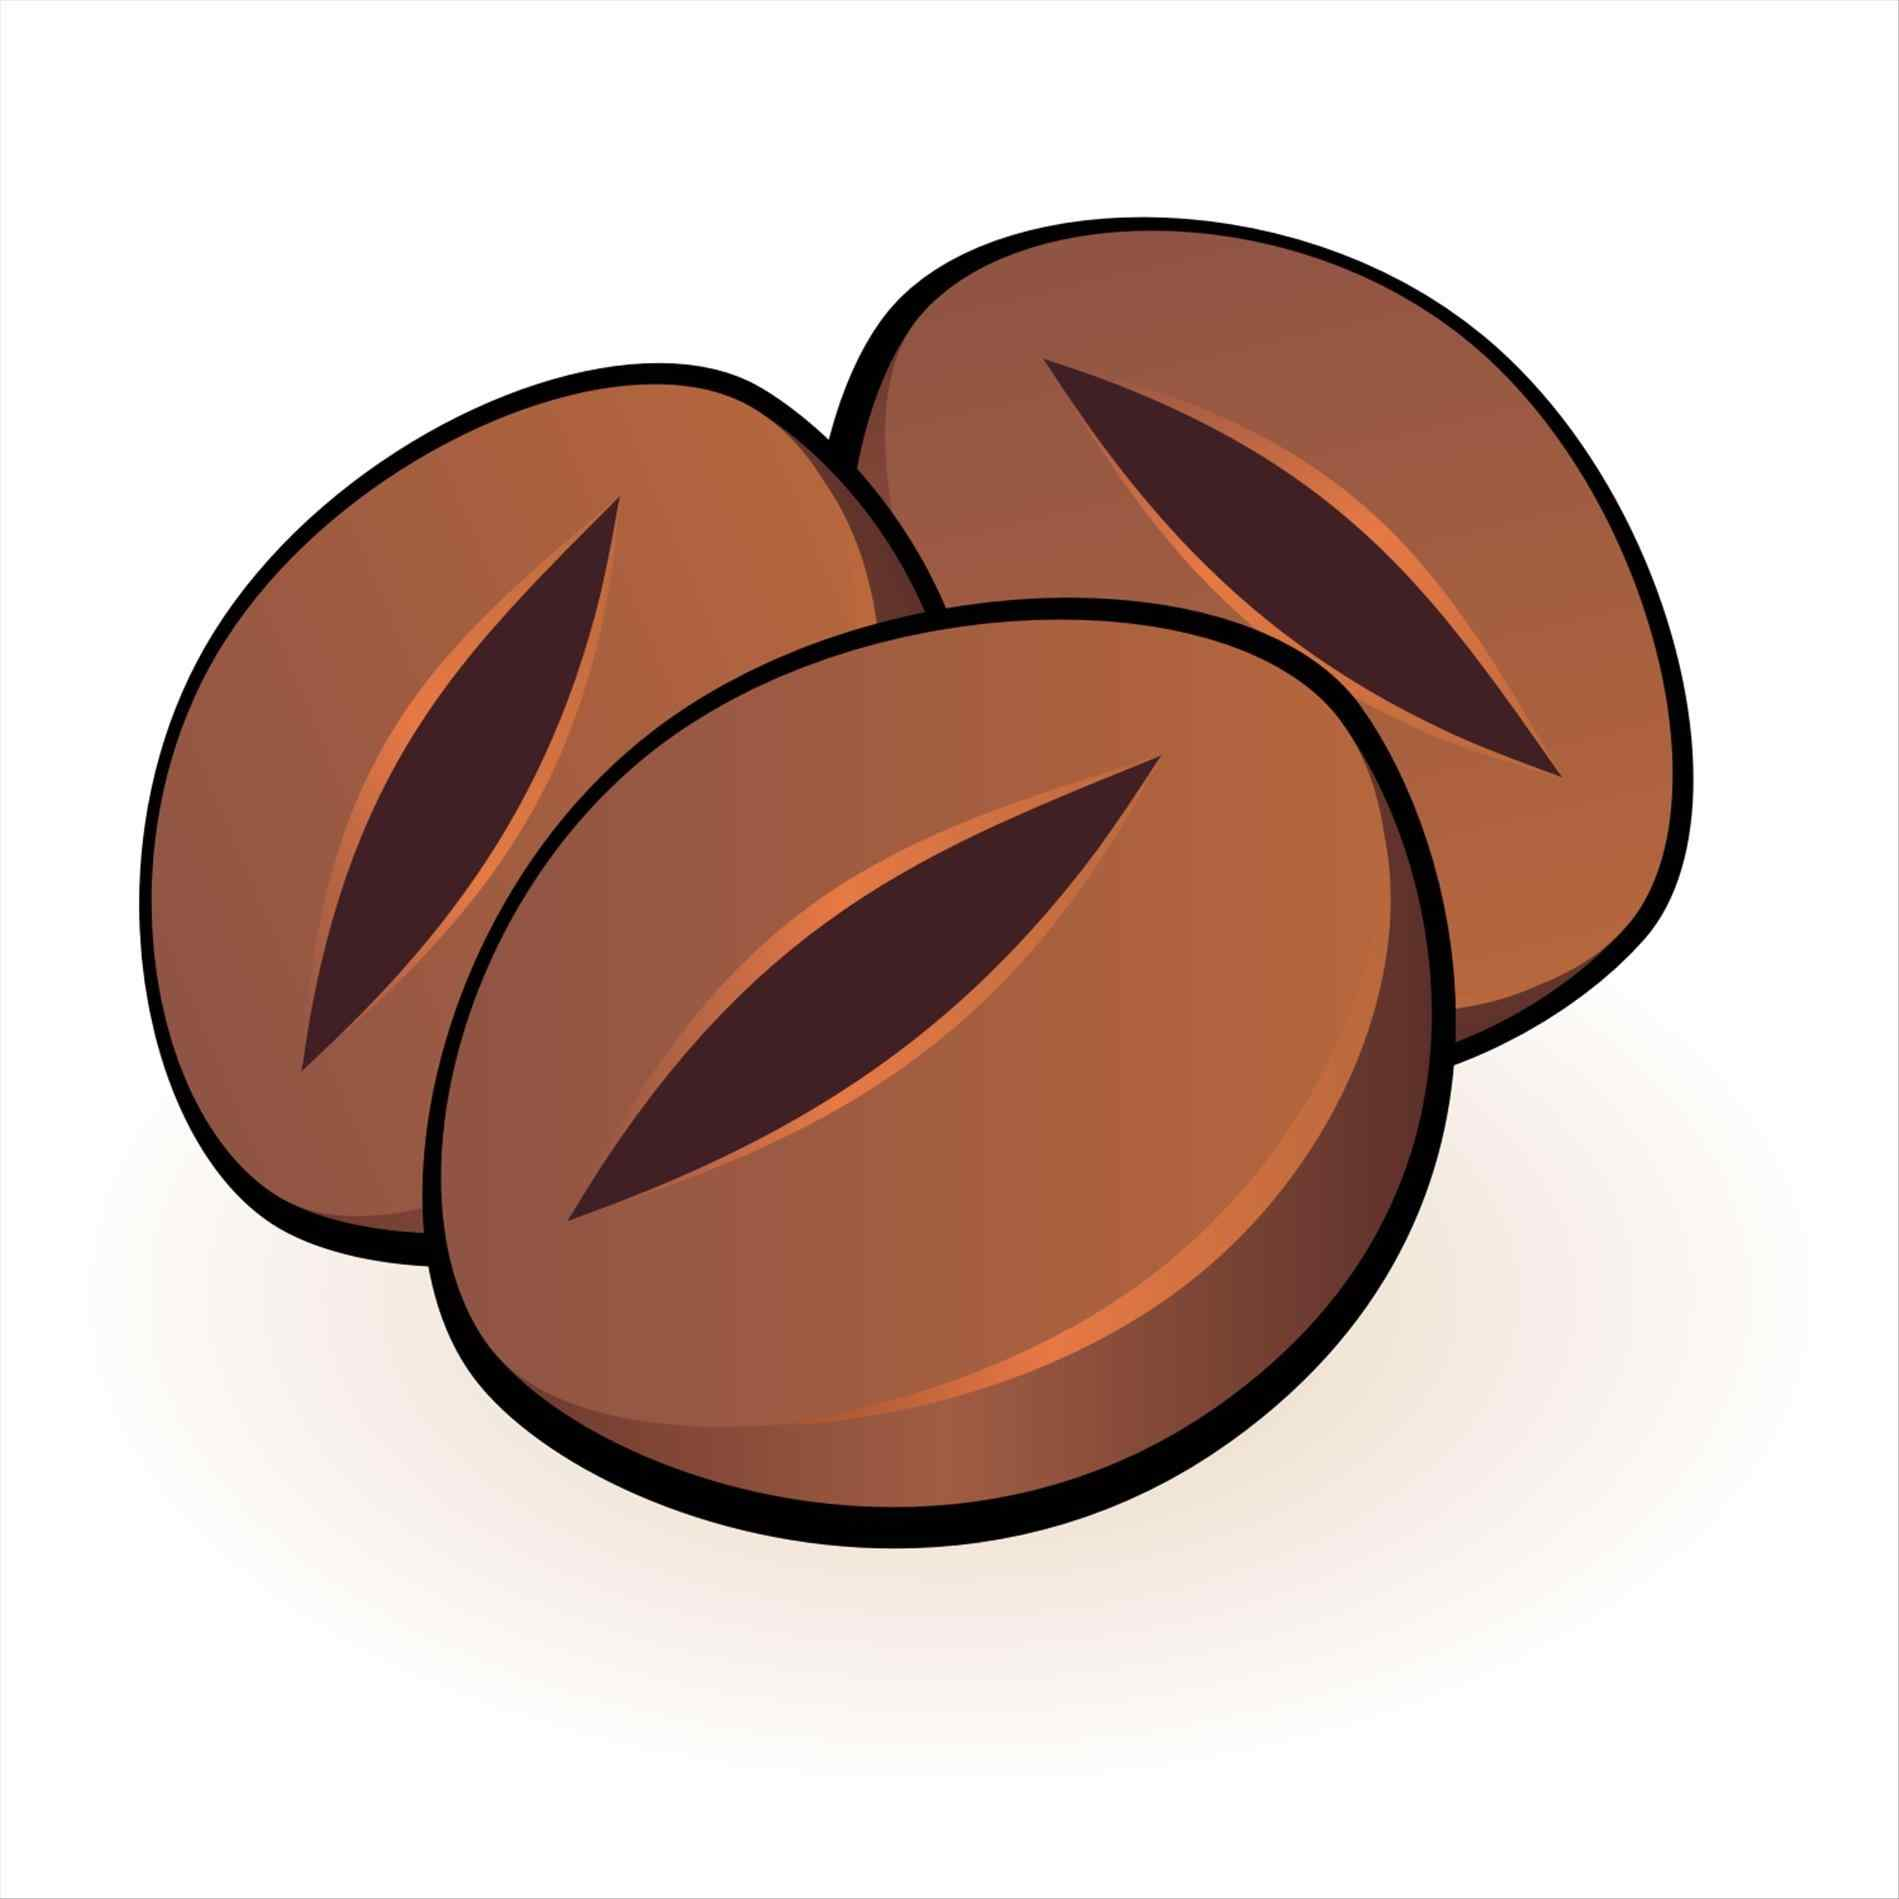 1899x1899 The Images Collection Of Coffee Bean Icon Png Free Download Clip